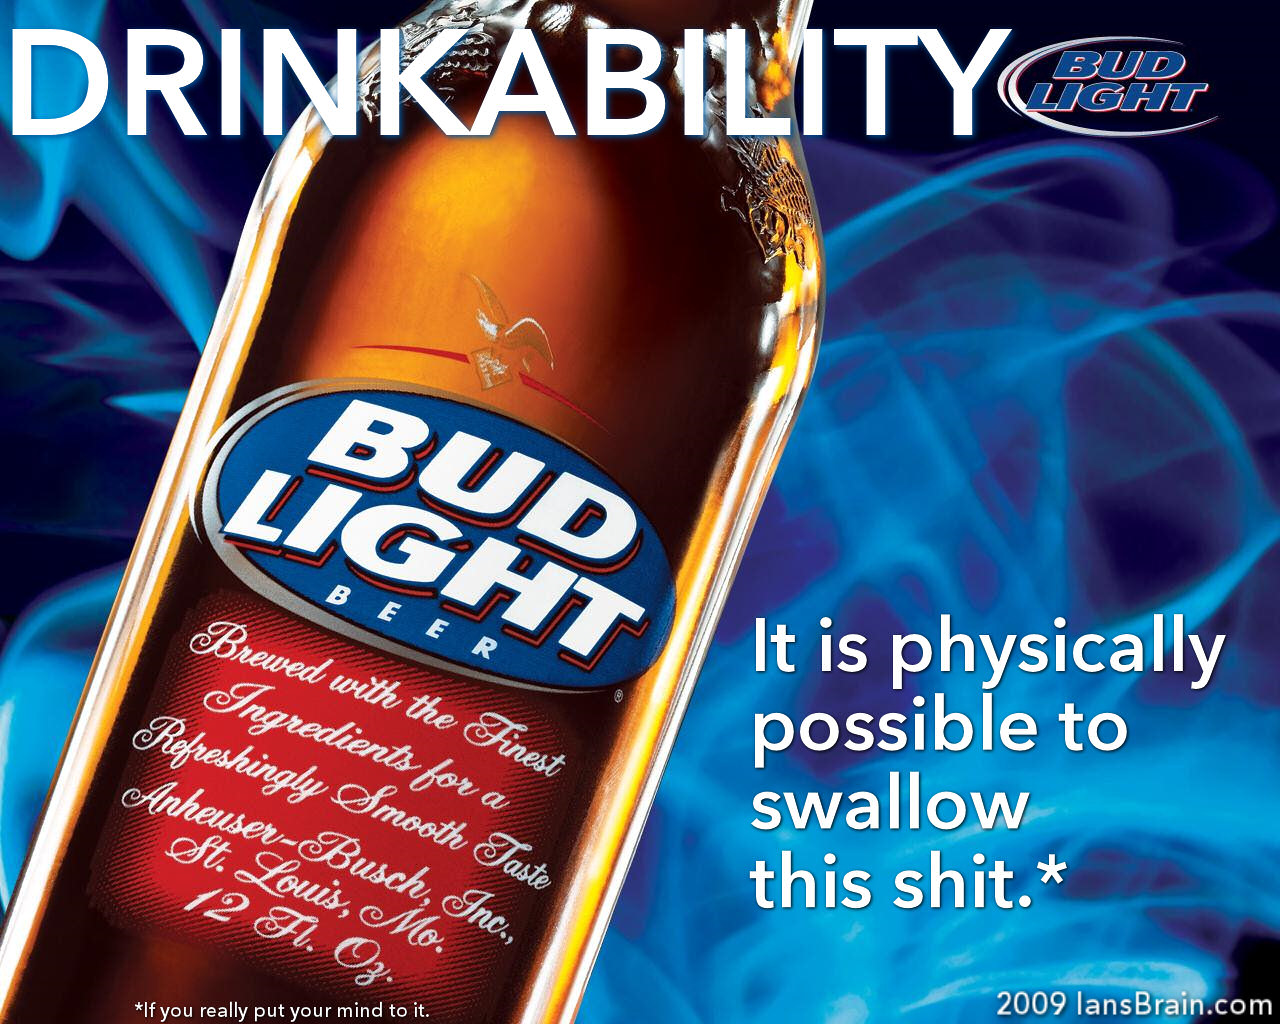 bud-girls-bud-light-graphics-and-comments-wallpaper-wp3003965